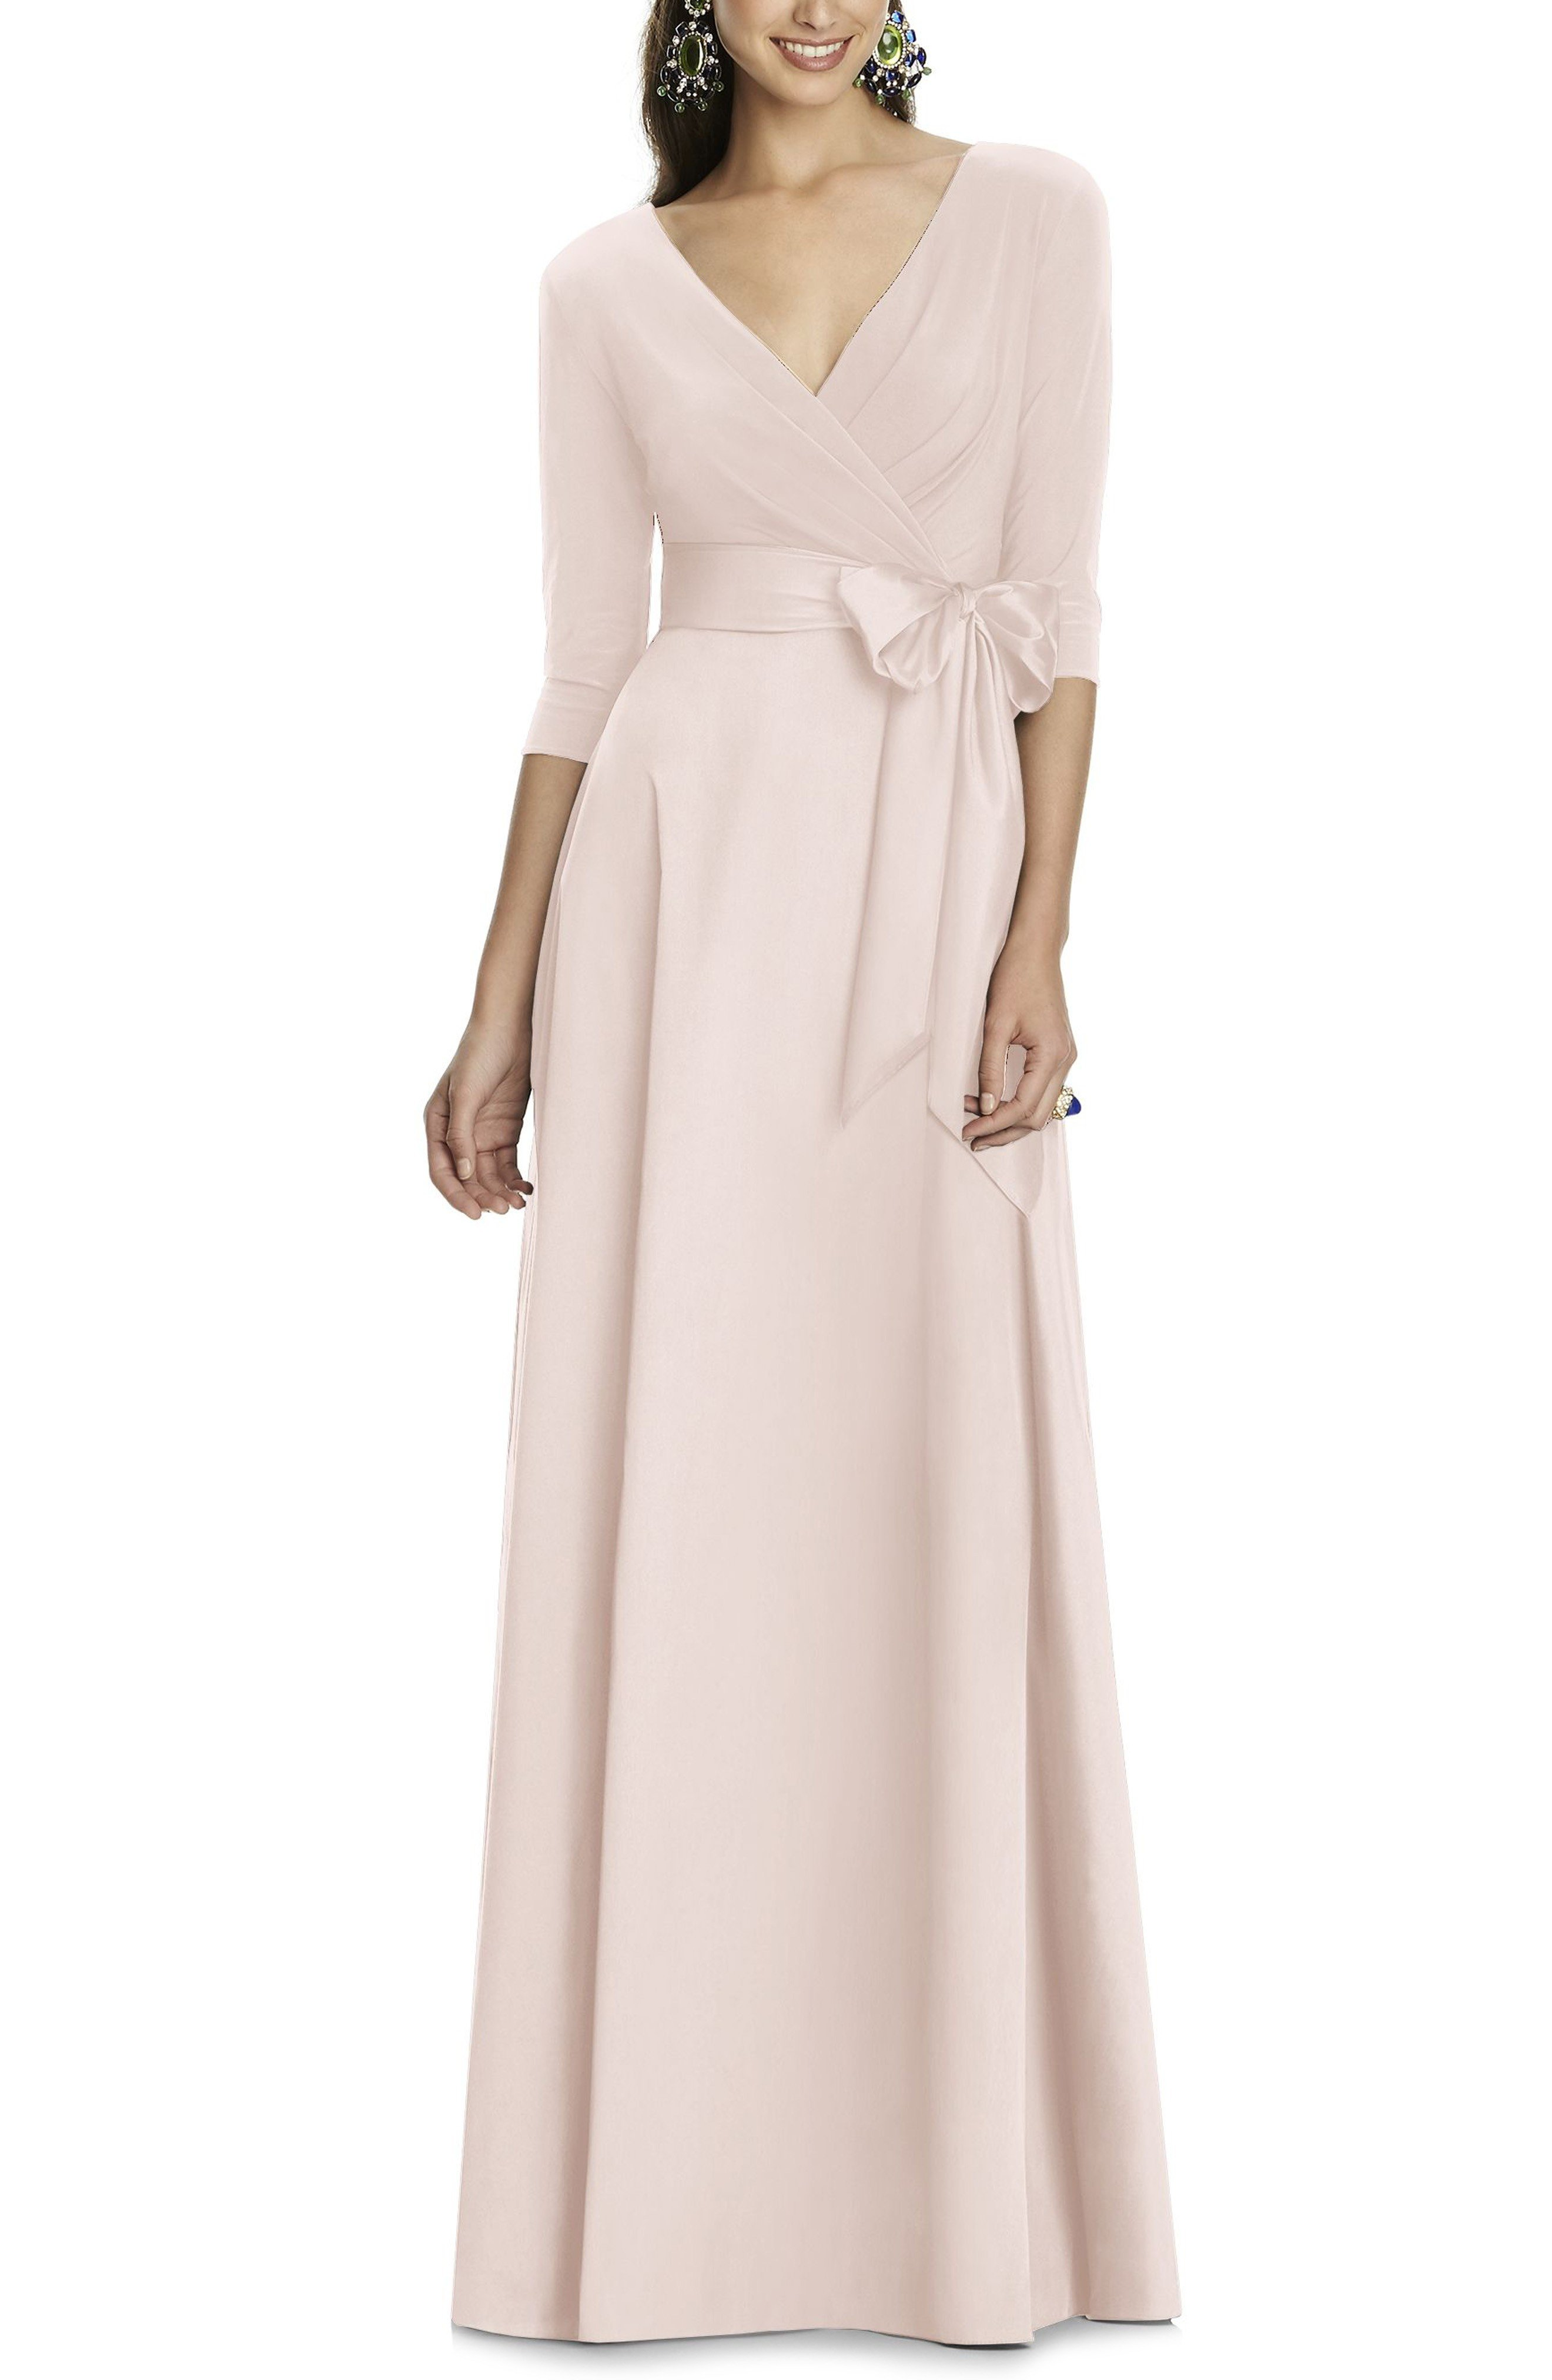 ALFRED SUNG Jersey Bodice A-Line Blush Gown